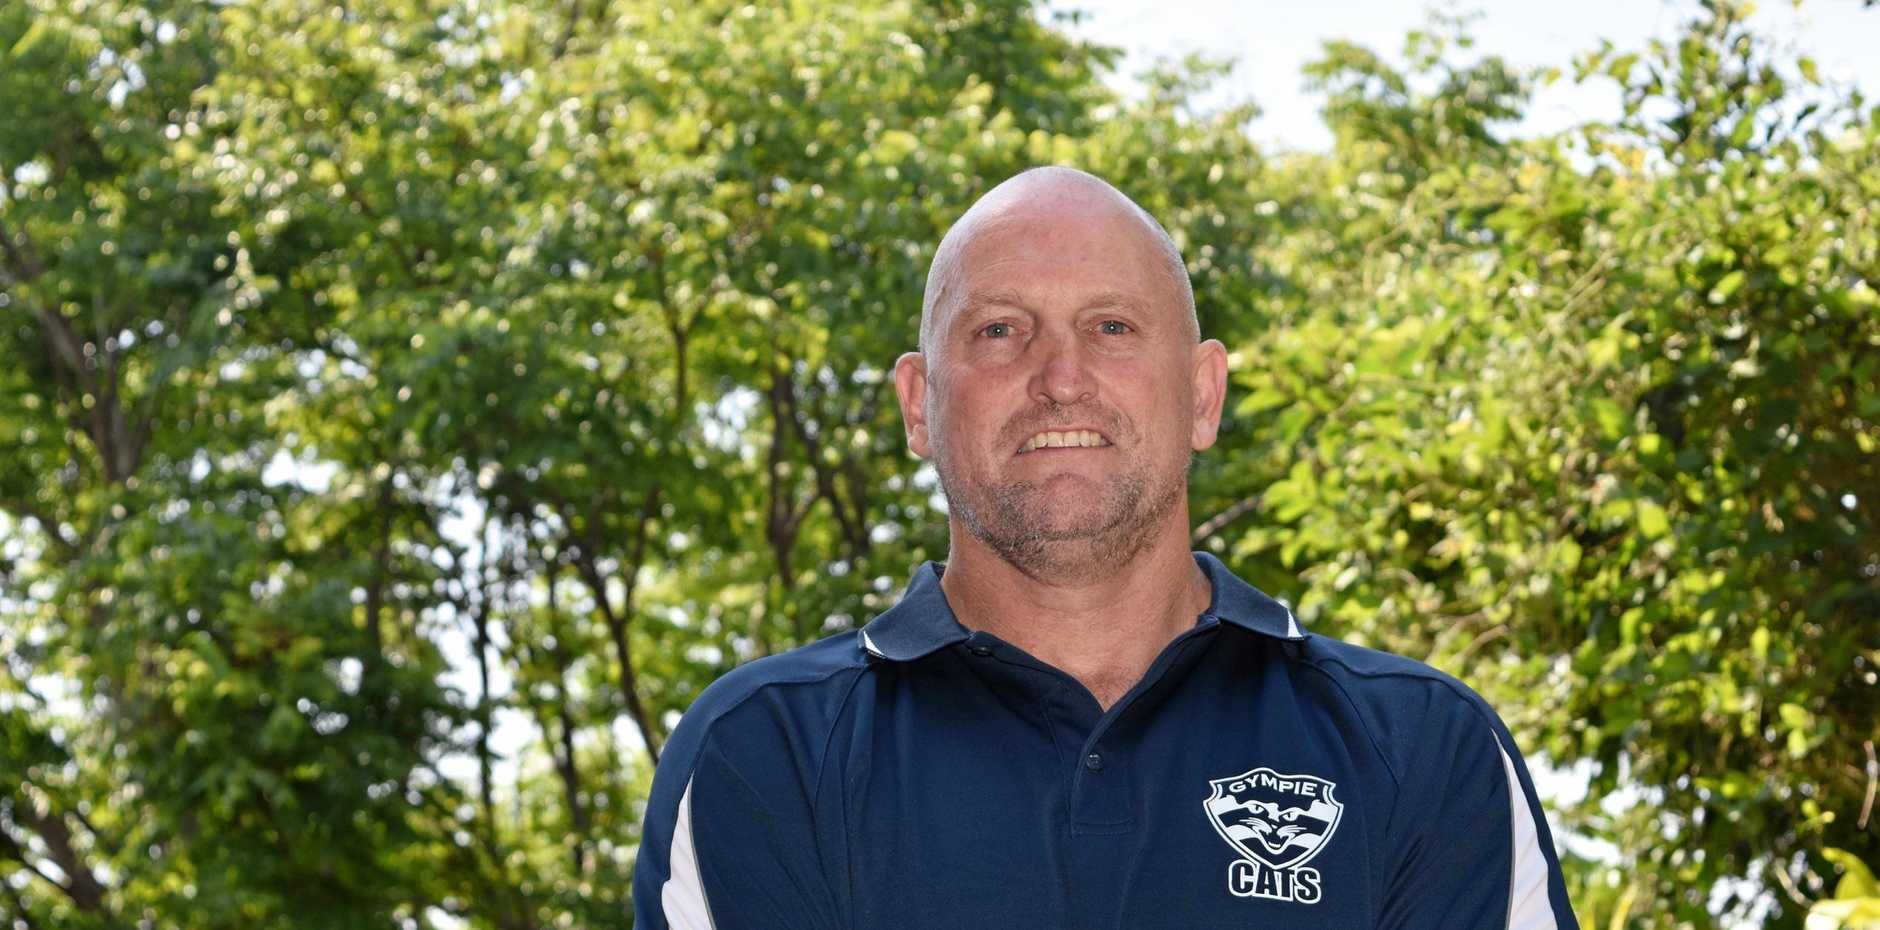 NEW CAT: Gympie Cats' new coach Dave Carroll has big plans in place for next season.